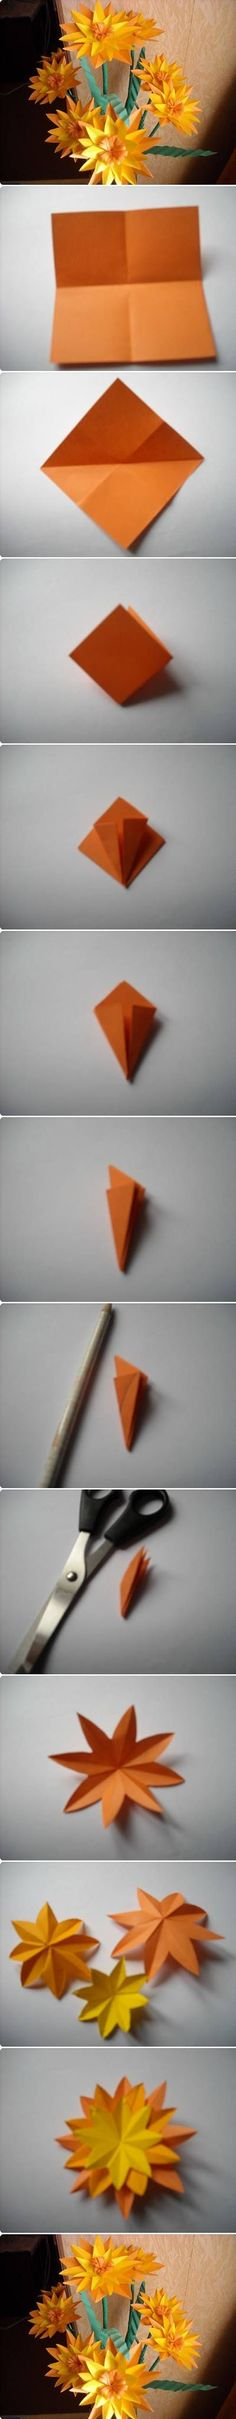 DIY Paper Marigold Flower flowers diy crafts home made easy crafts craft idea crafts ideas diy ideas diy crafts diy idea do it yourself diy projects diy craft handmade how to tutorial Paper Flowers Diy, Handmade Flowers, Flower Crafts, Fabric Flowers, Flower Diy, Origami Paper Art, Diy Paper, Paper Crafting, Quilling